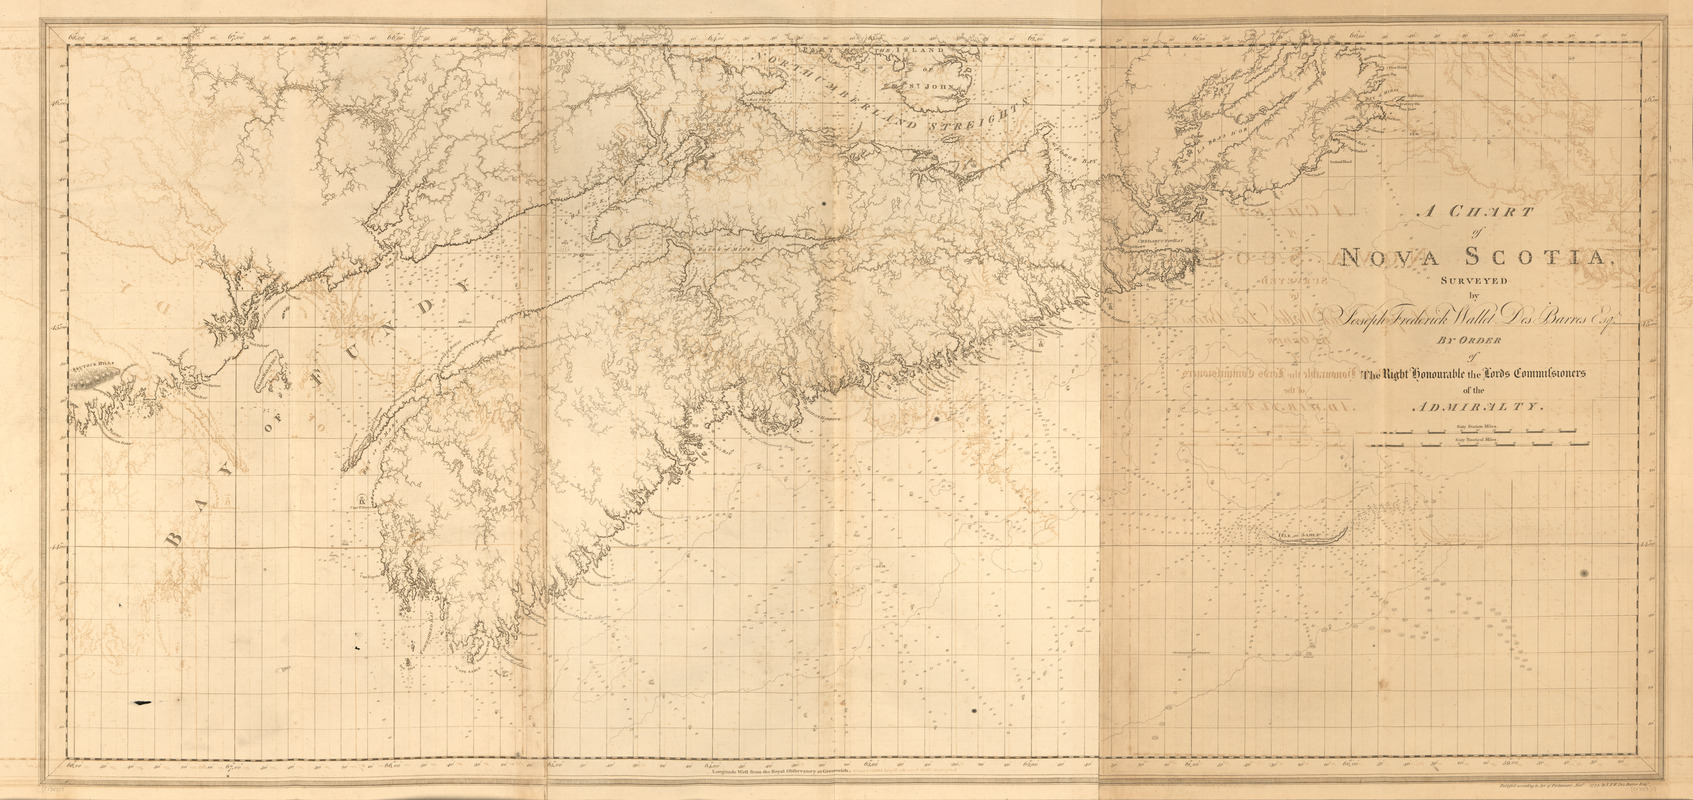 A chart of Nova Scotia